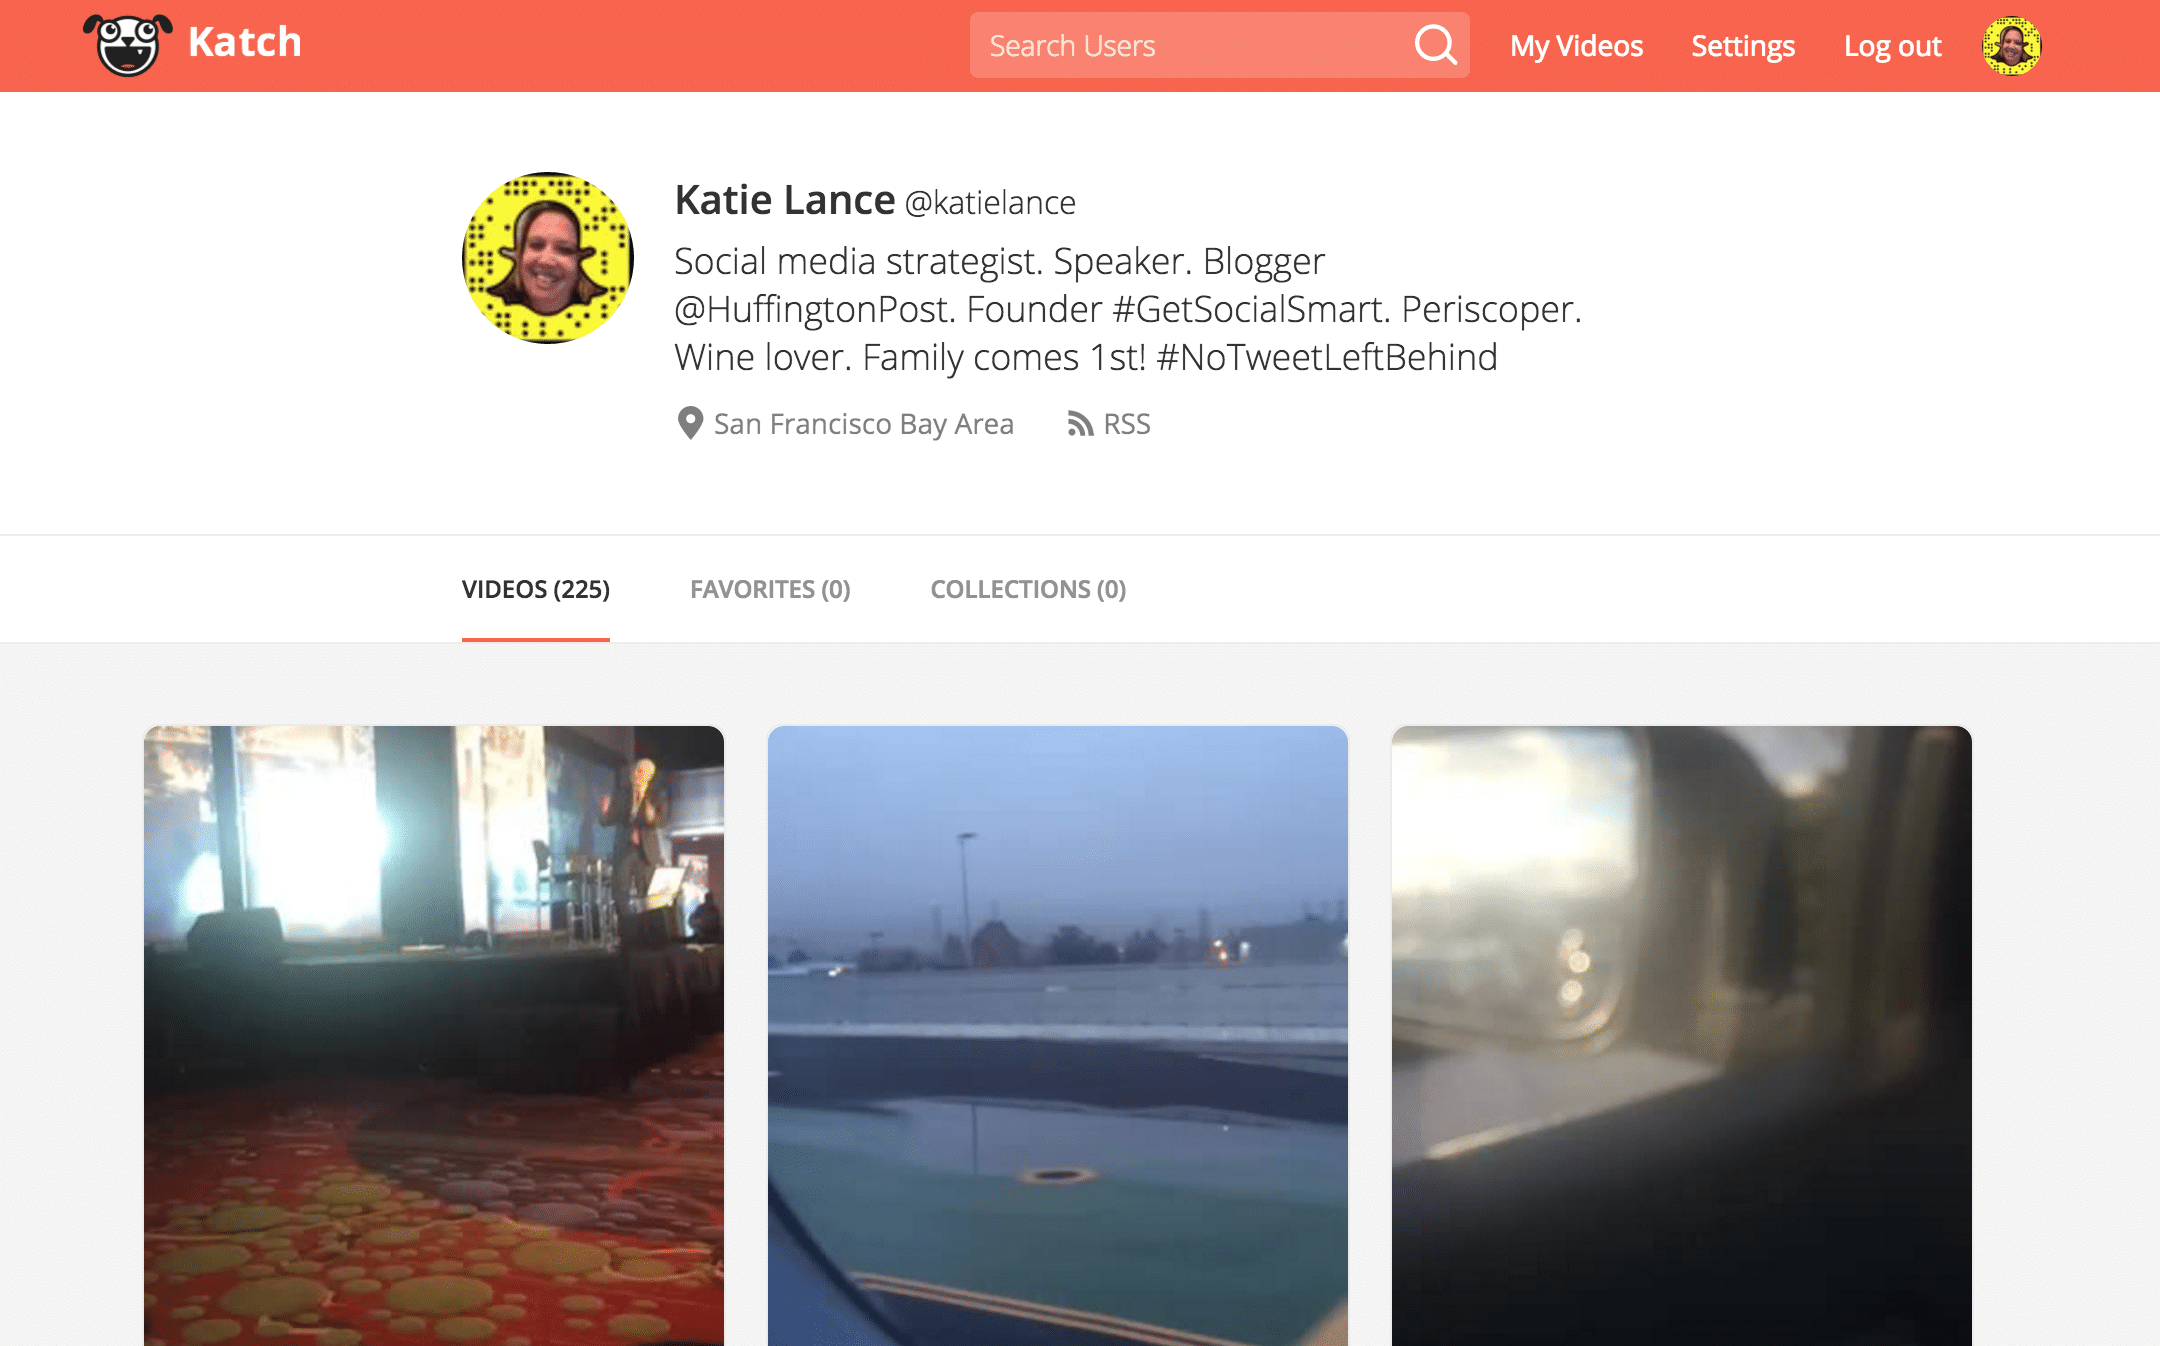 One of my favorite tools for repurposing Periscope broadcasts in Katch.me